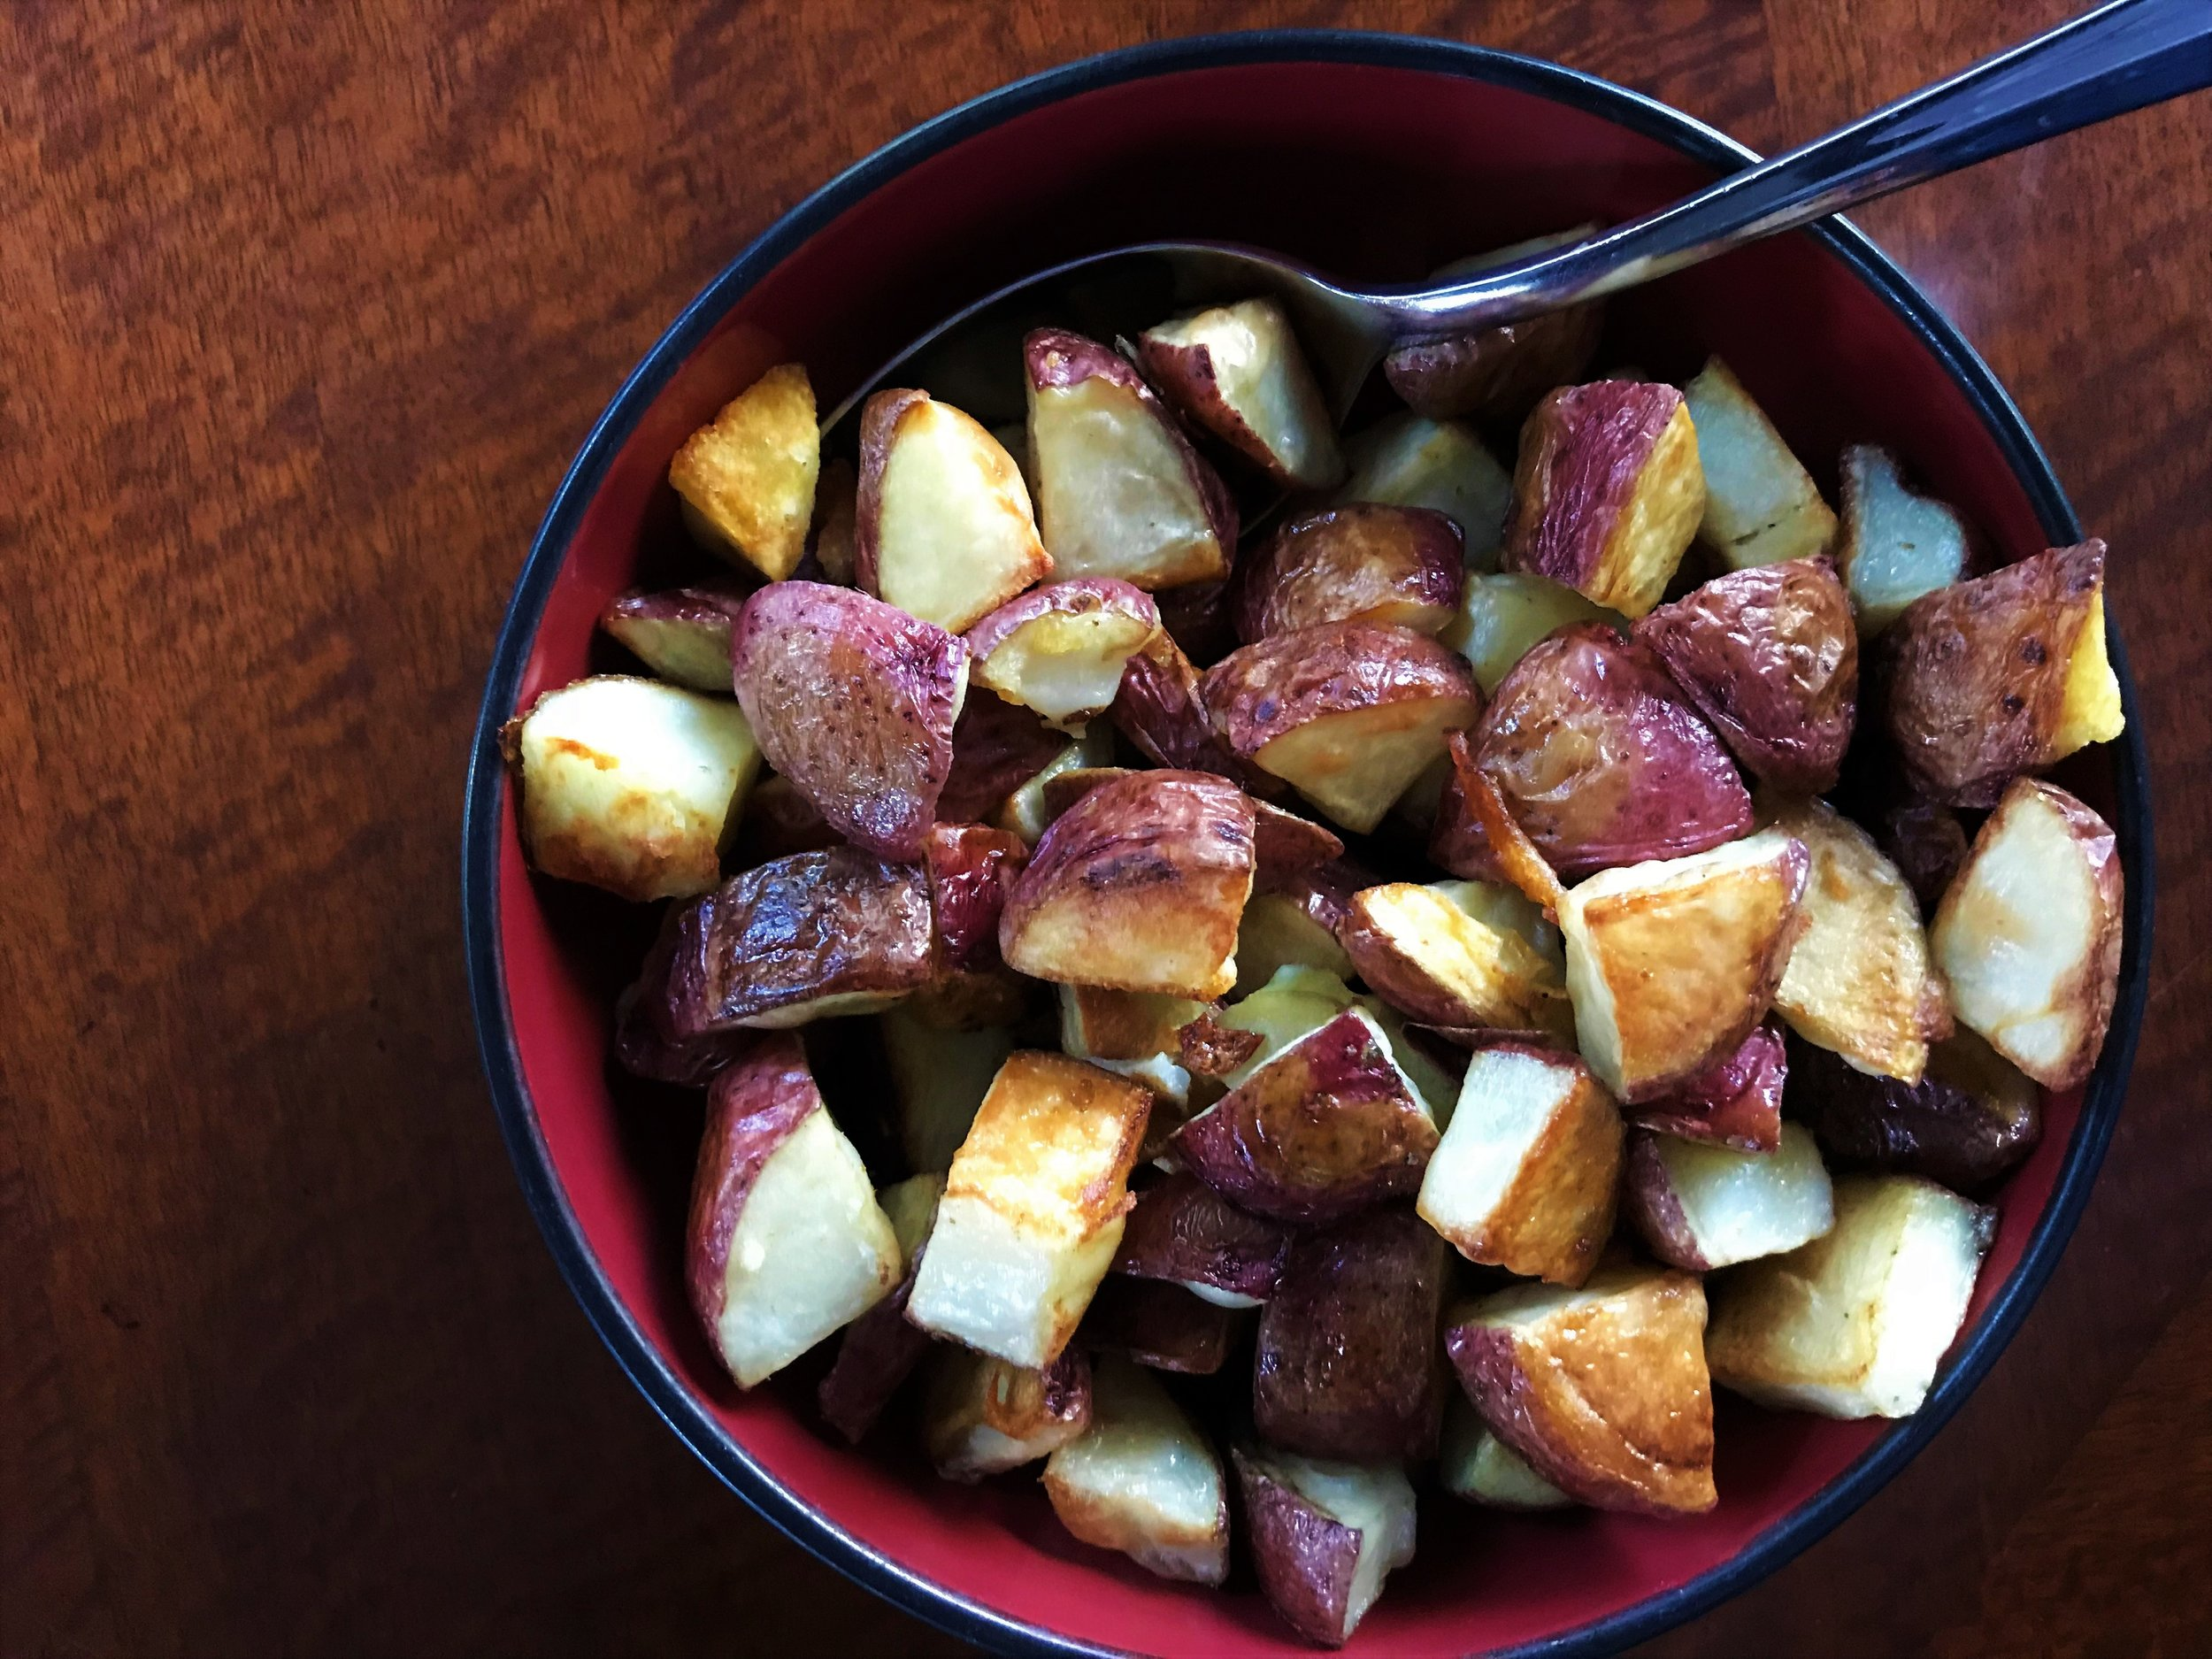 Roasted Red-Skinned Potatoes made in the Adventure Kitchen.